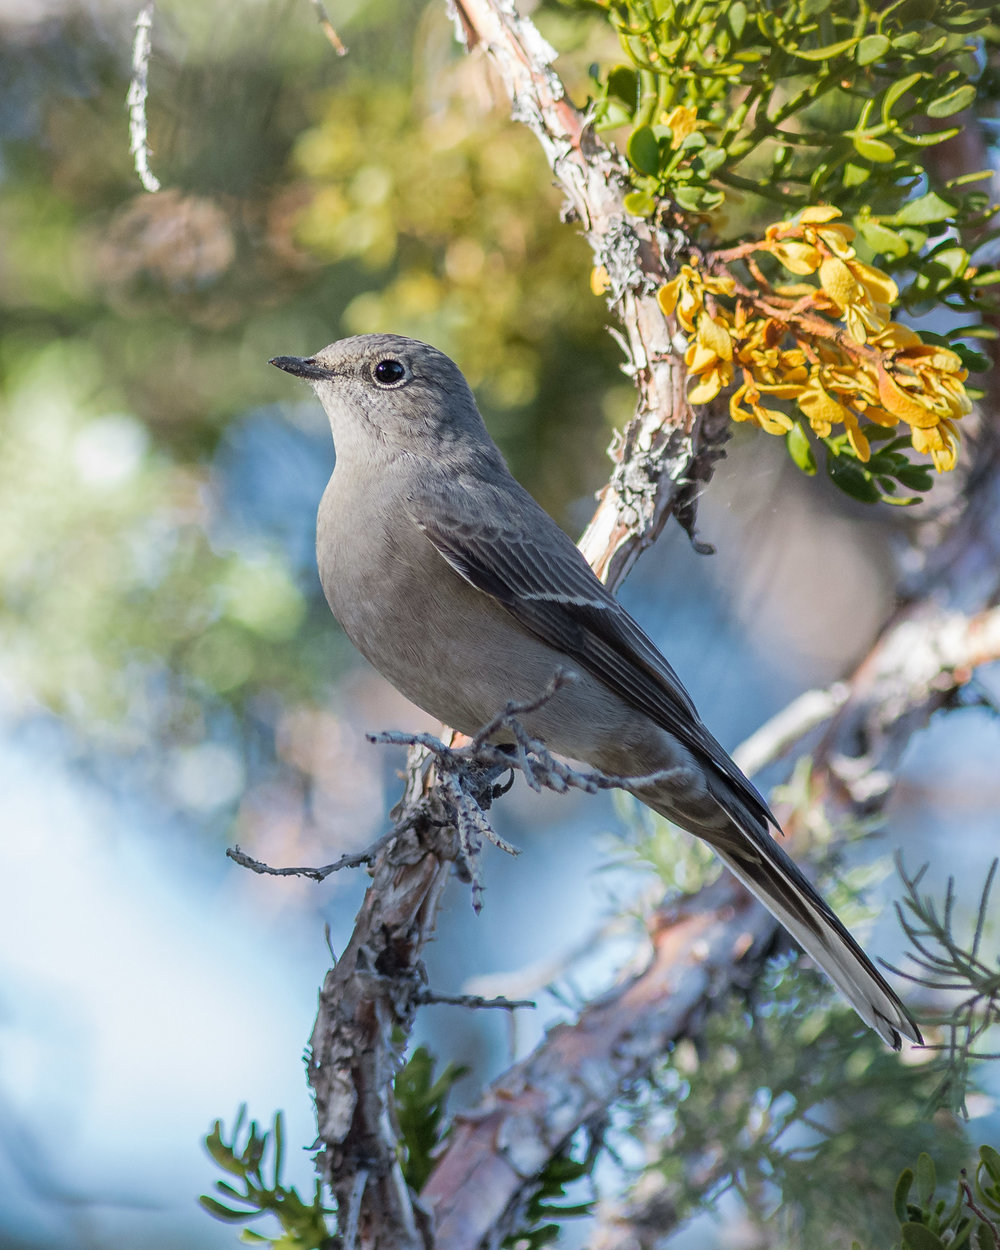 Townsend's Solitaire (Myadestes townsendi) - Lava Beds NM, Siskiyou Co. (CA)  EQ: D7200, 300mm f/2.8   Taken: 10-1-2016 at 16:50   Settings: 450 mm (35mm eqiv), 1/1000s, f/3.5, ISO640, +1/3EV         Conditions: Shady/Sunny